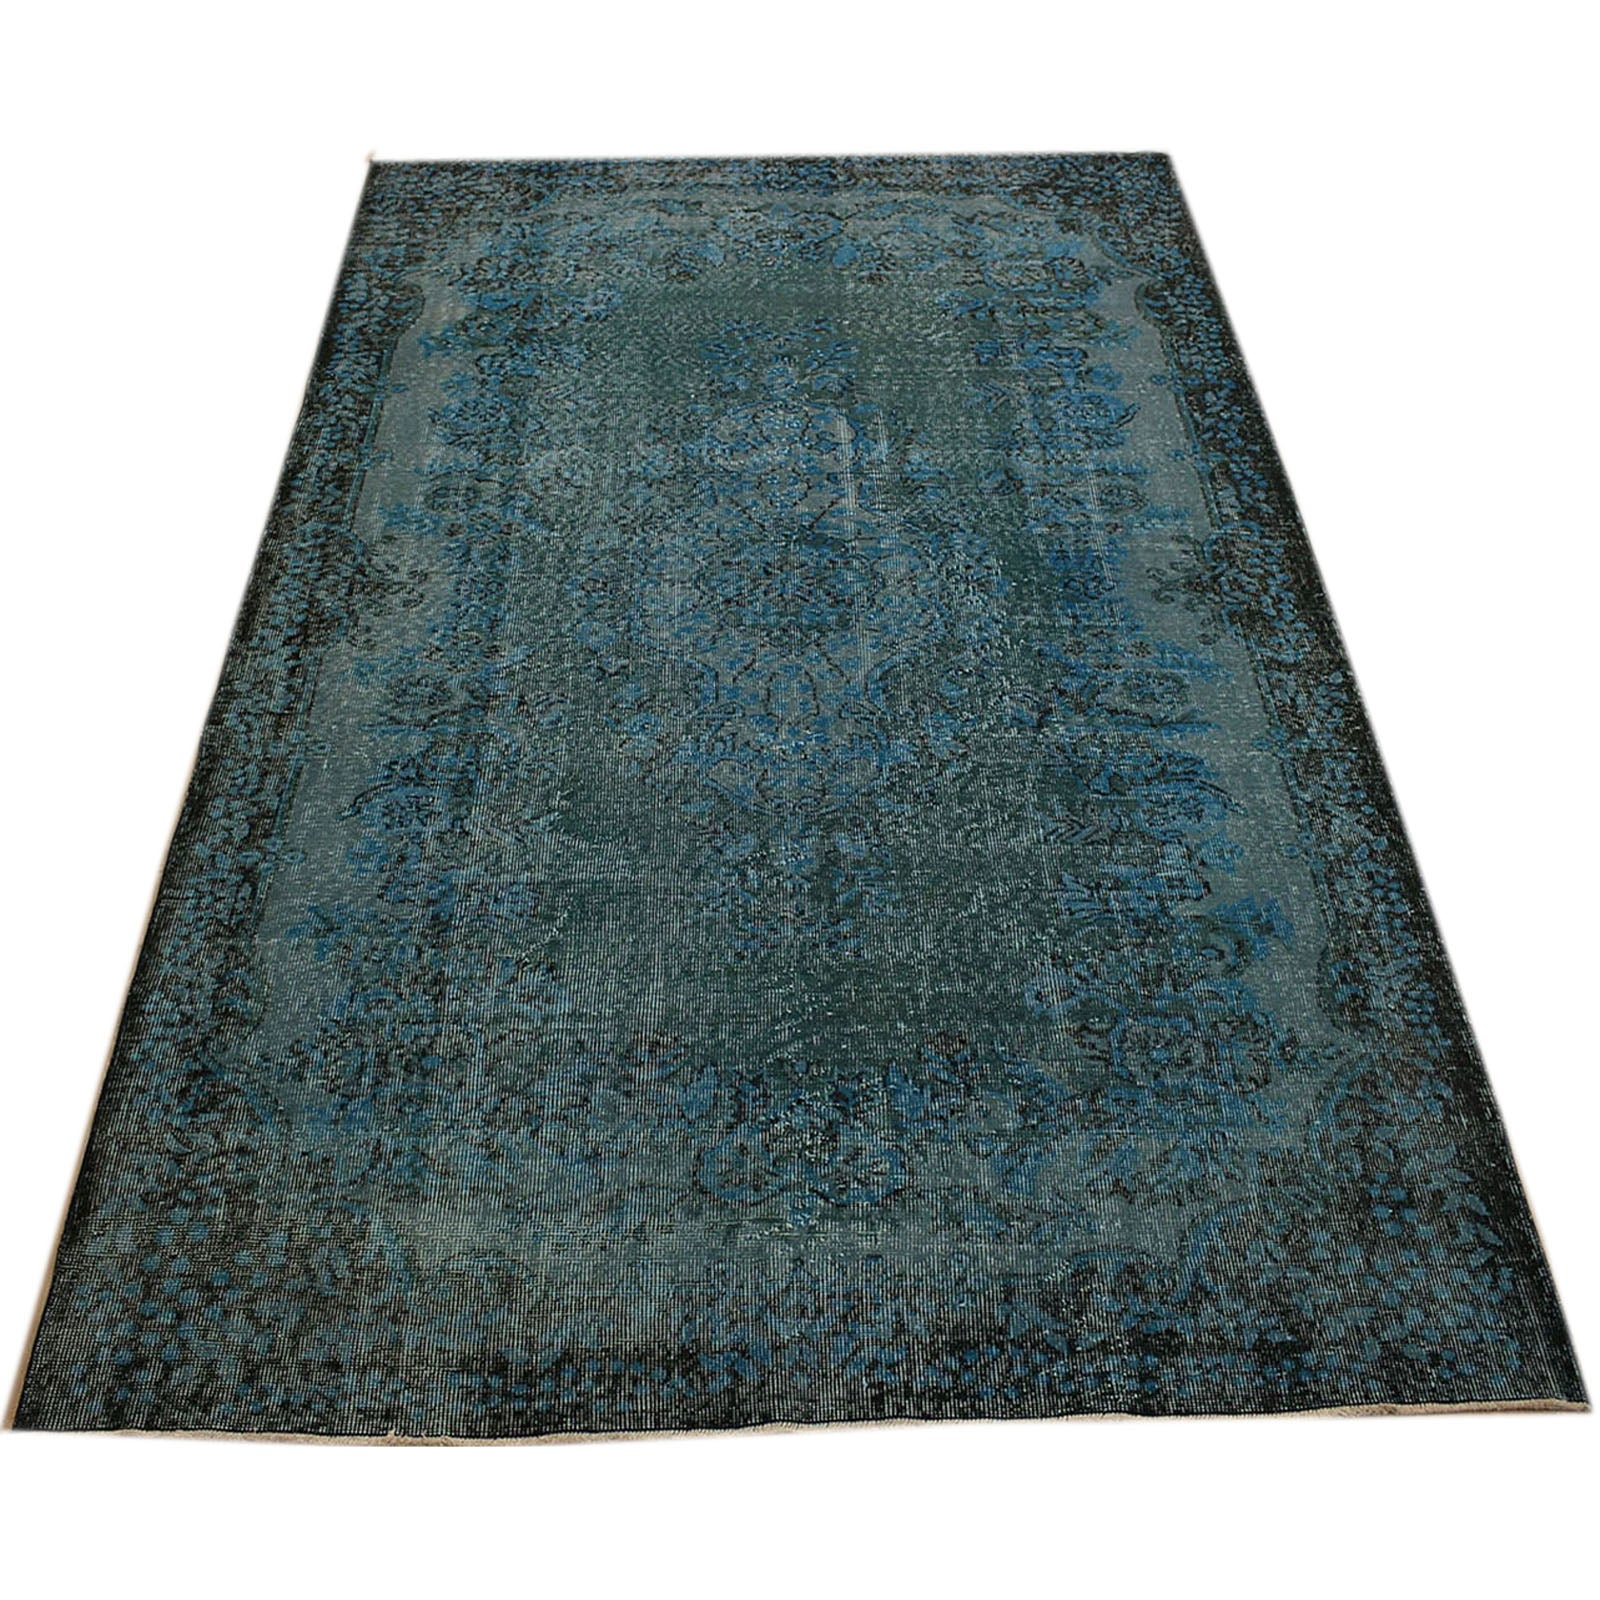 Hali 178X284 CM Bursa Handmade over dyed rug 2368 -  178*284 سجاده بورصة صناعة يدوية على بساط مصبوغ - Shop Online Furniture and Home Decor Store in Dubai, UAE at ebarza